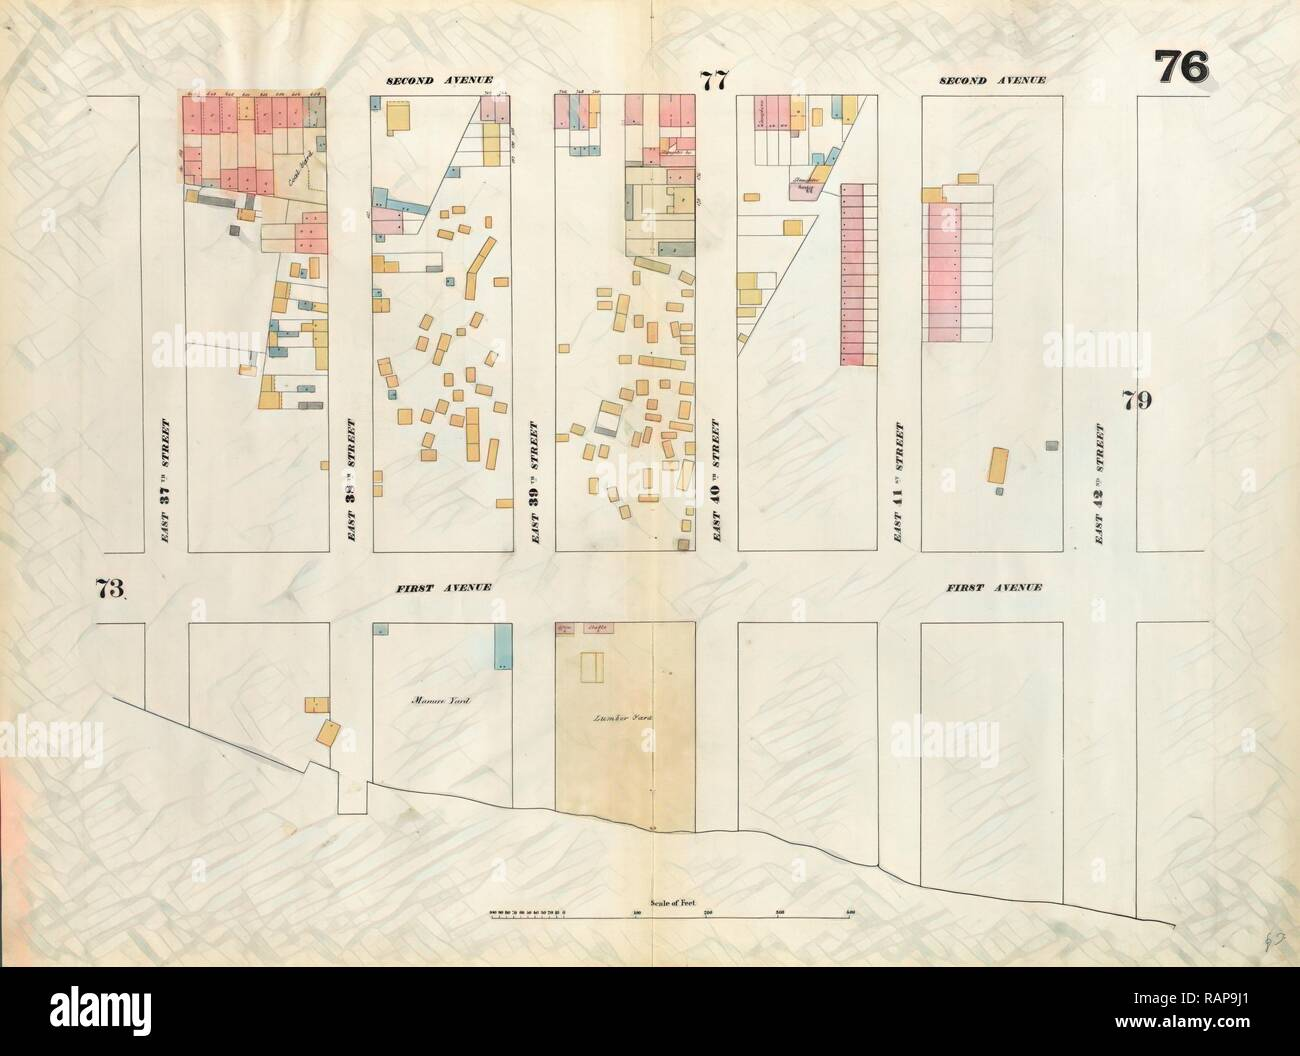 Plate 76: Map bounded by East 42nd Street, East River, East 37th Street, Second Avenue. 1857, 1862, Perris and Browne reimagined - Stock Image